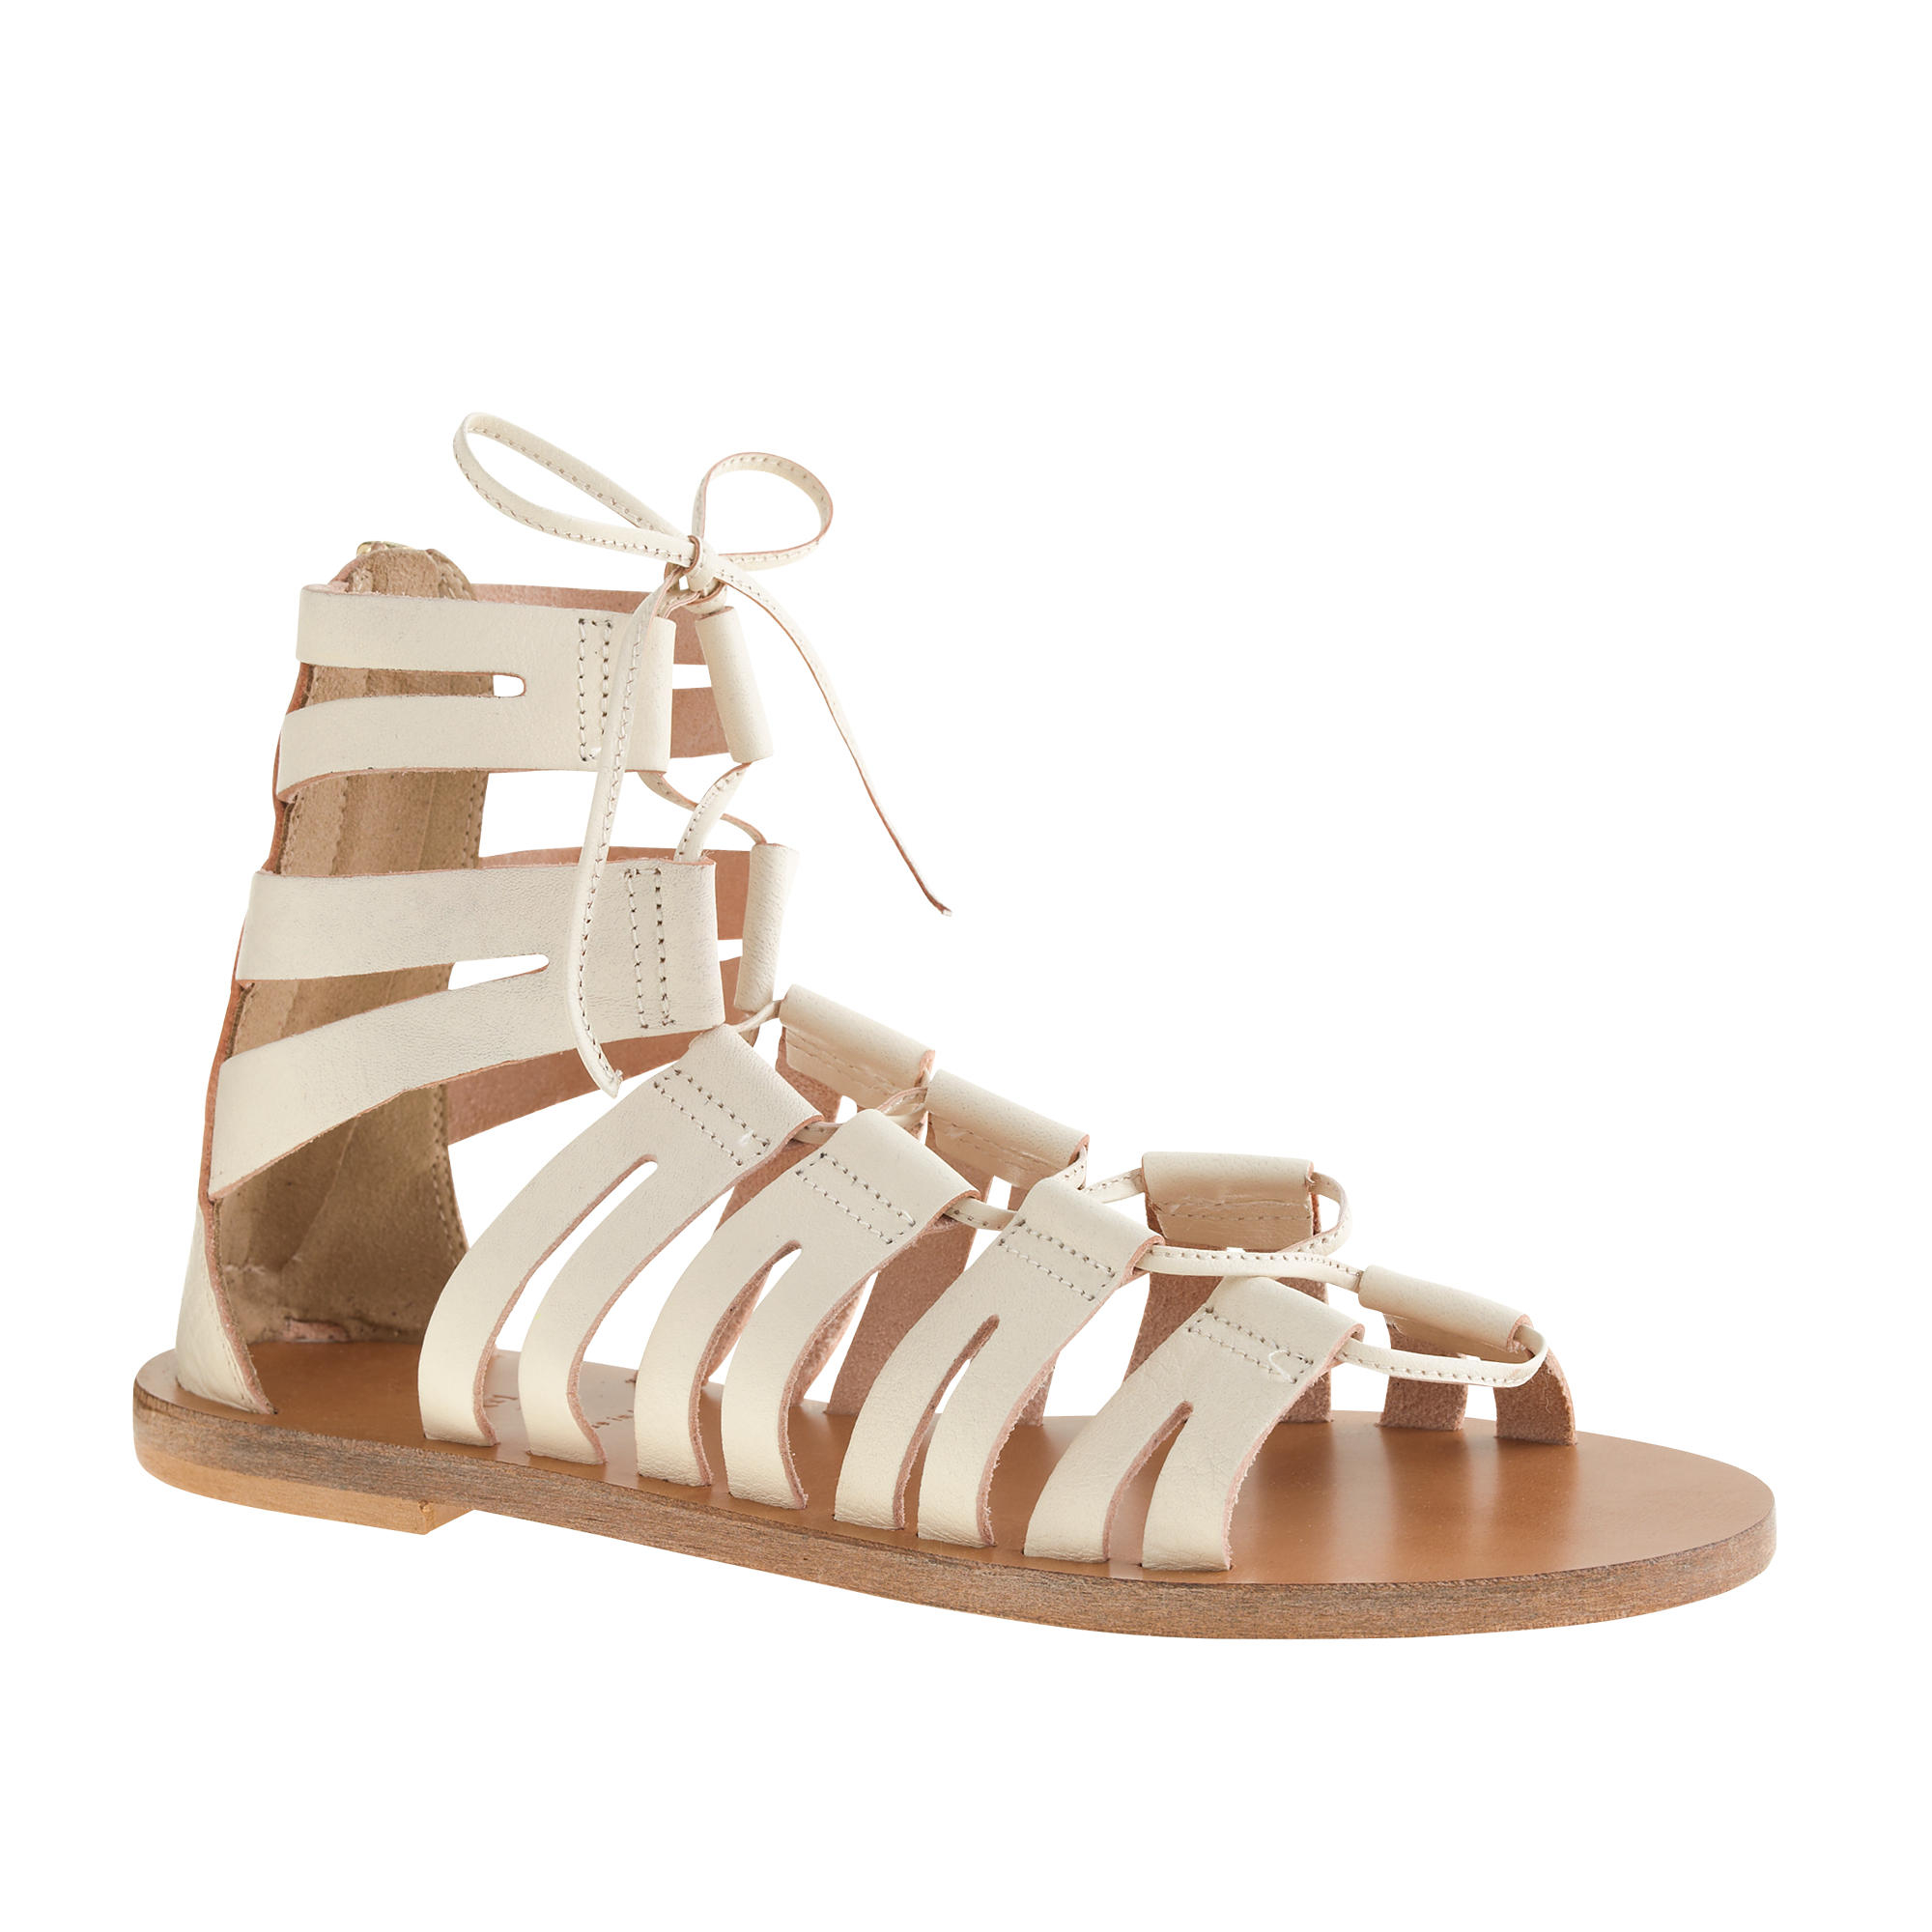 J Crew Lace Up Gladiator Sandals In Metallic Lyst